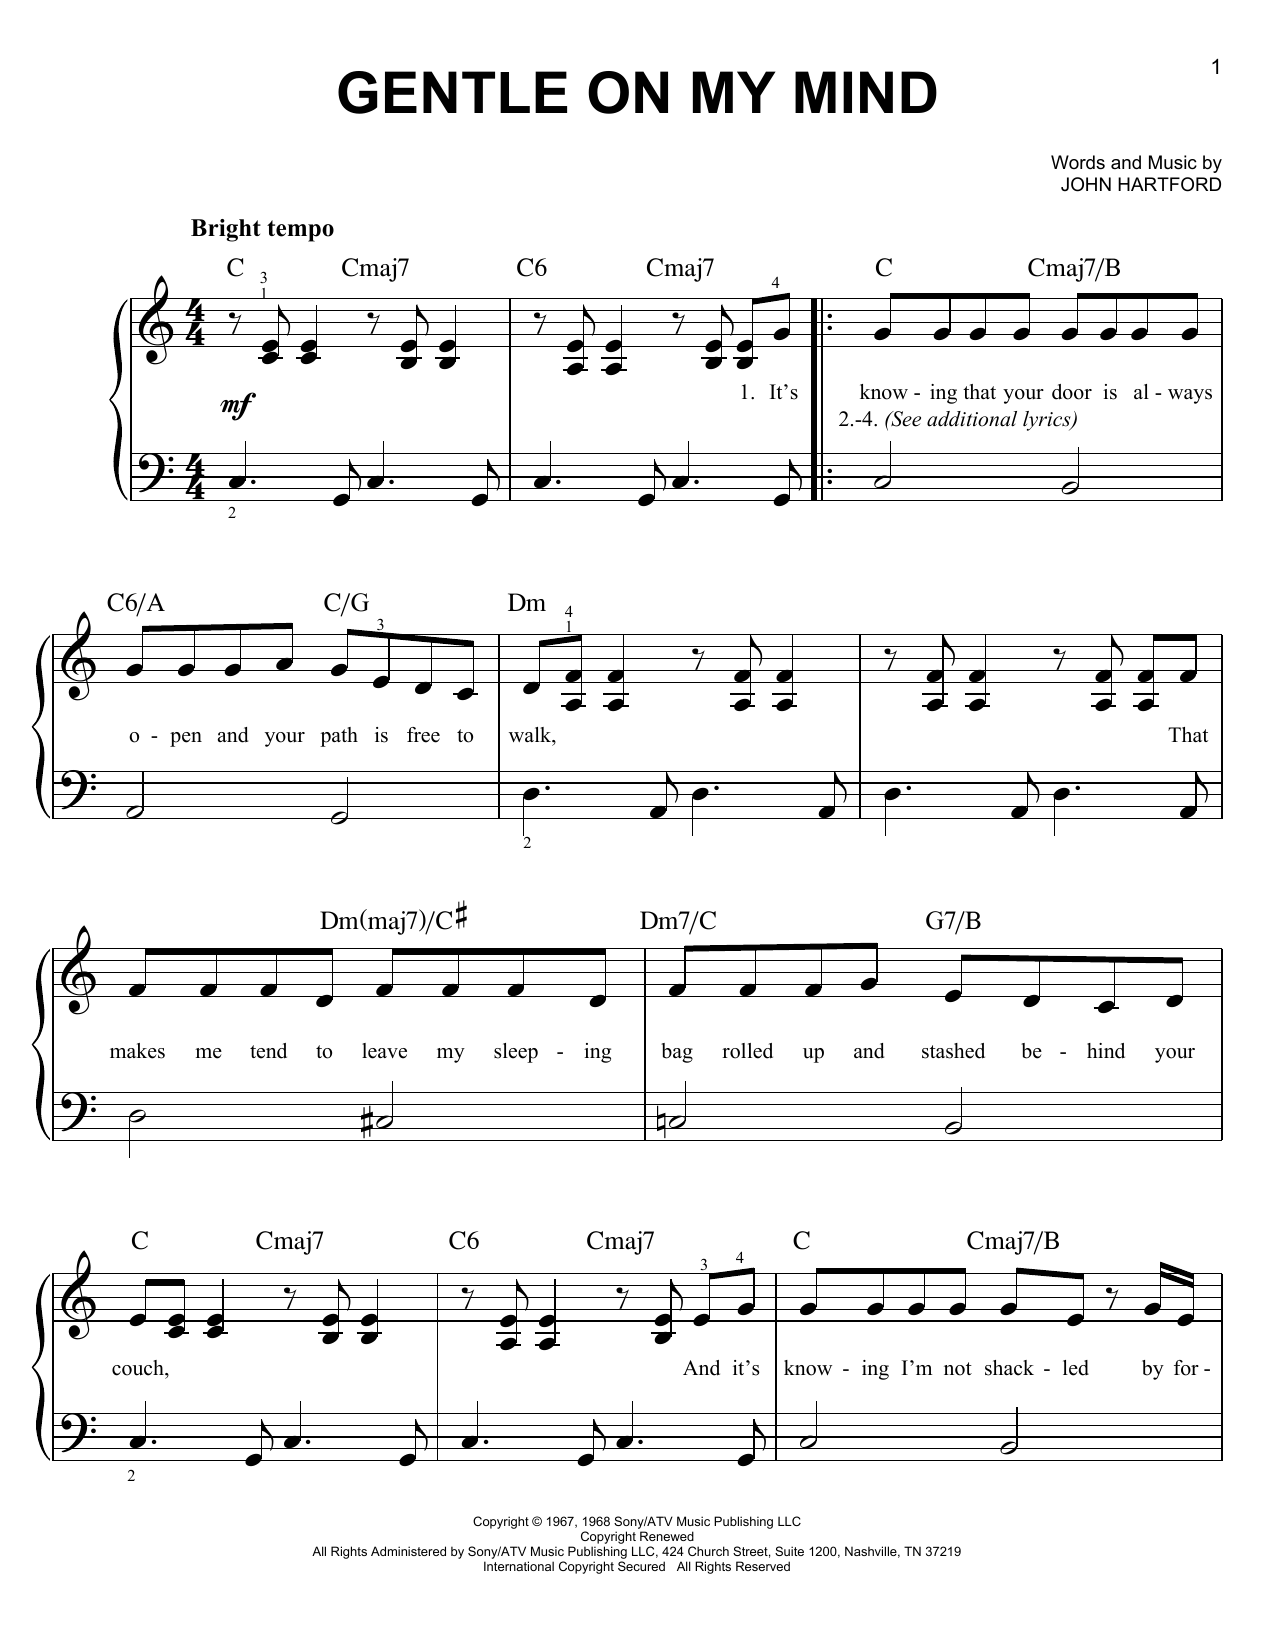 Glen Campbell Gentle On My Mind sheet music notes and chords